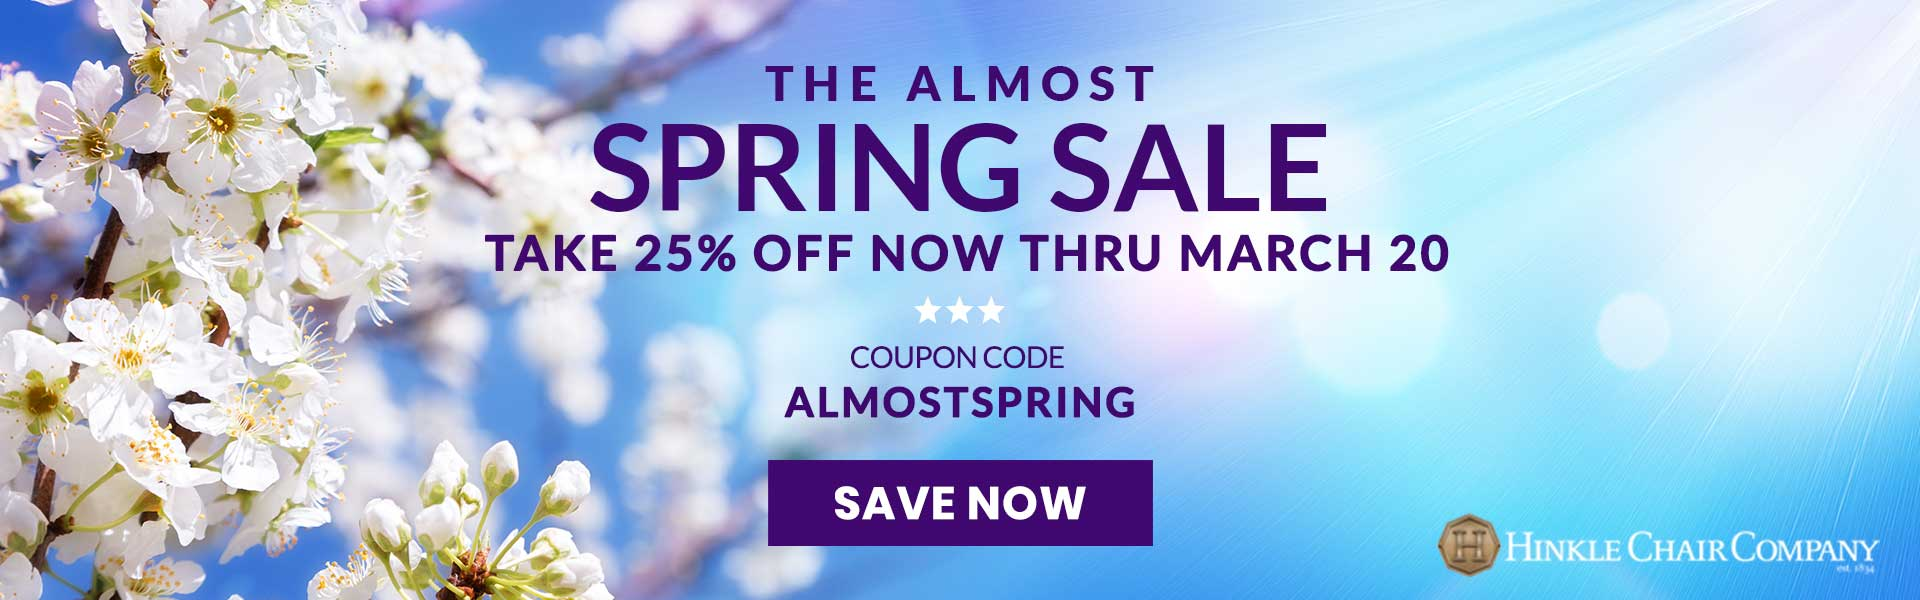 Almost Spring Sale